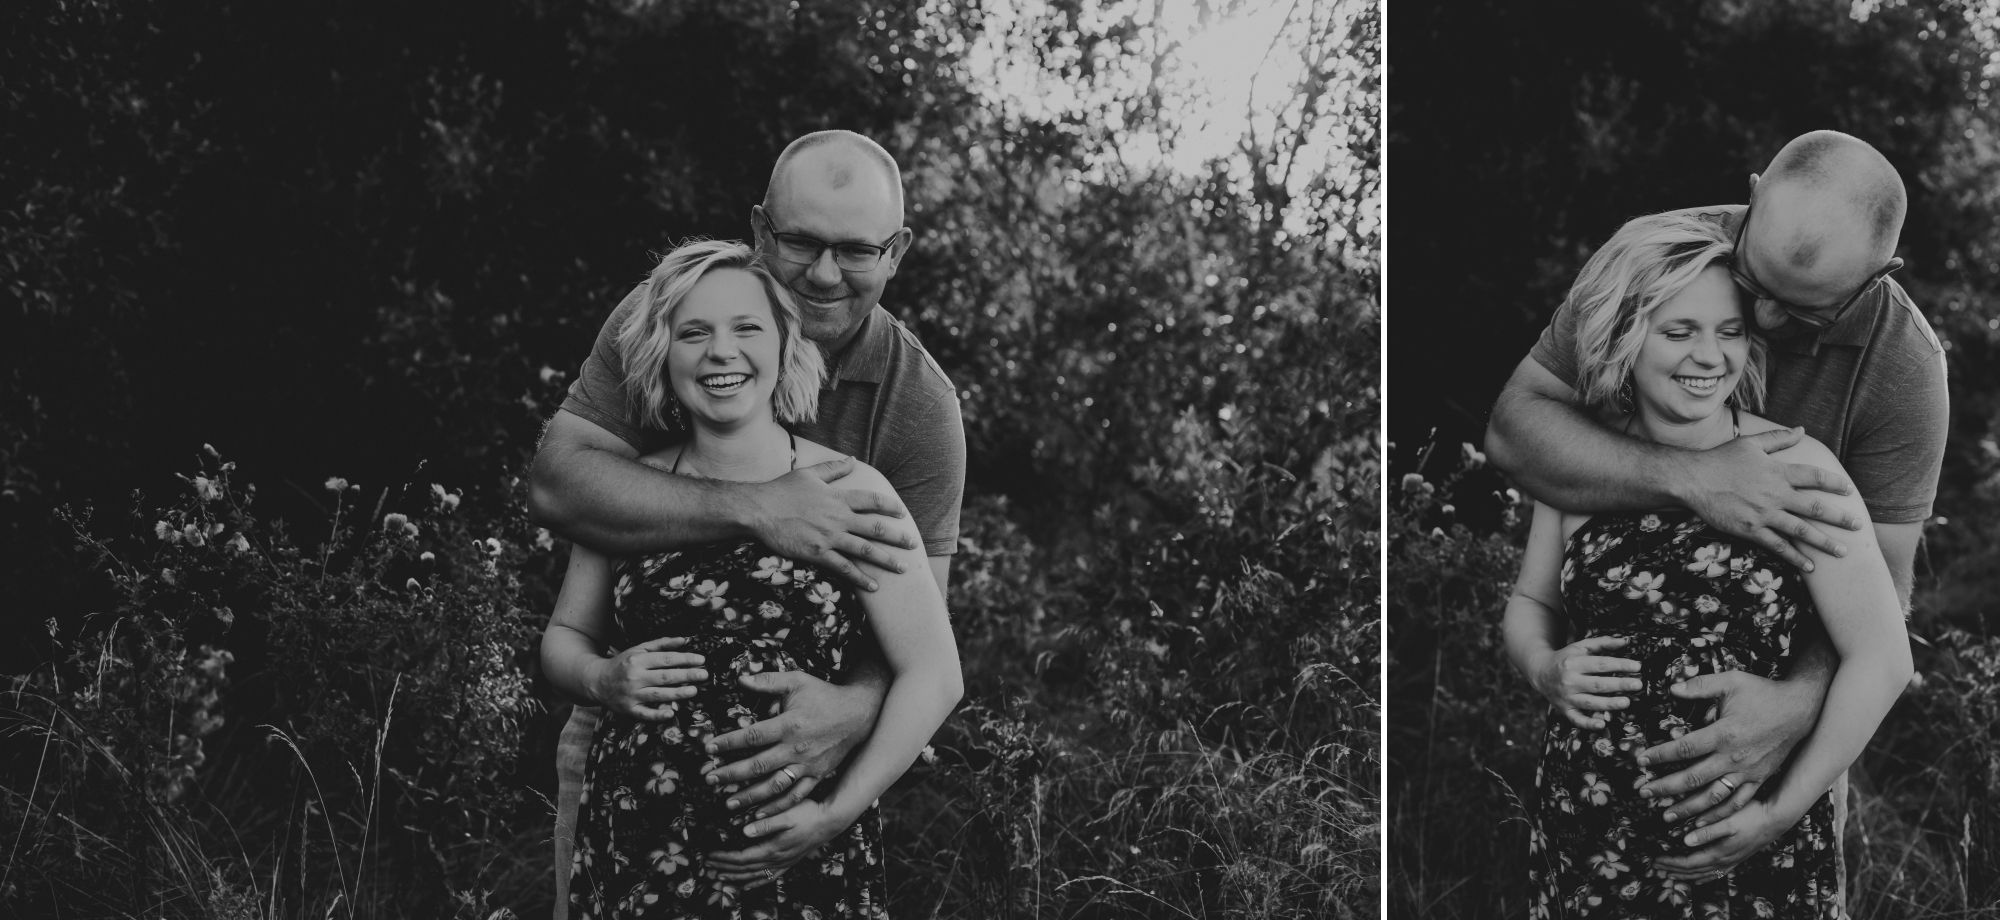 Black and white photos of a pregnant woman in a floral dress smiling while her husband hugs her from behind.